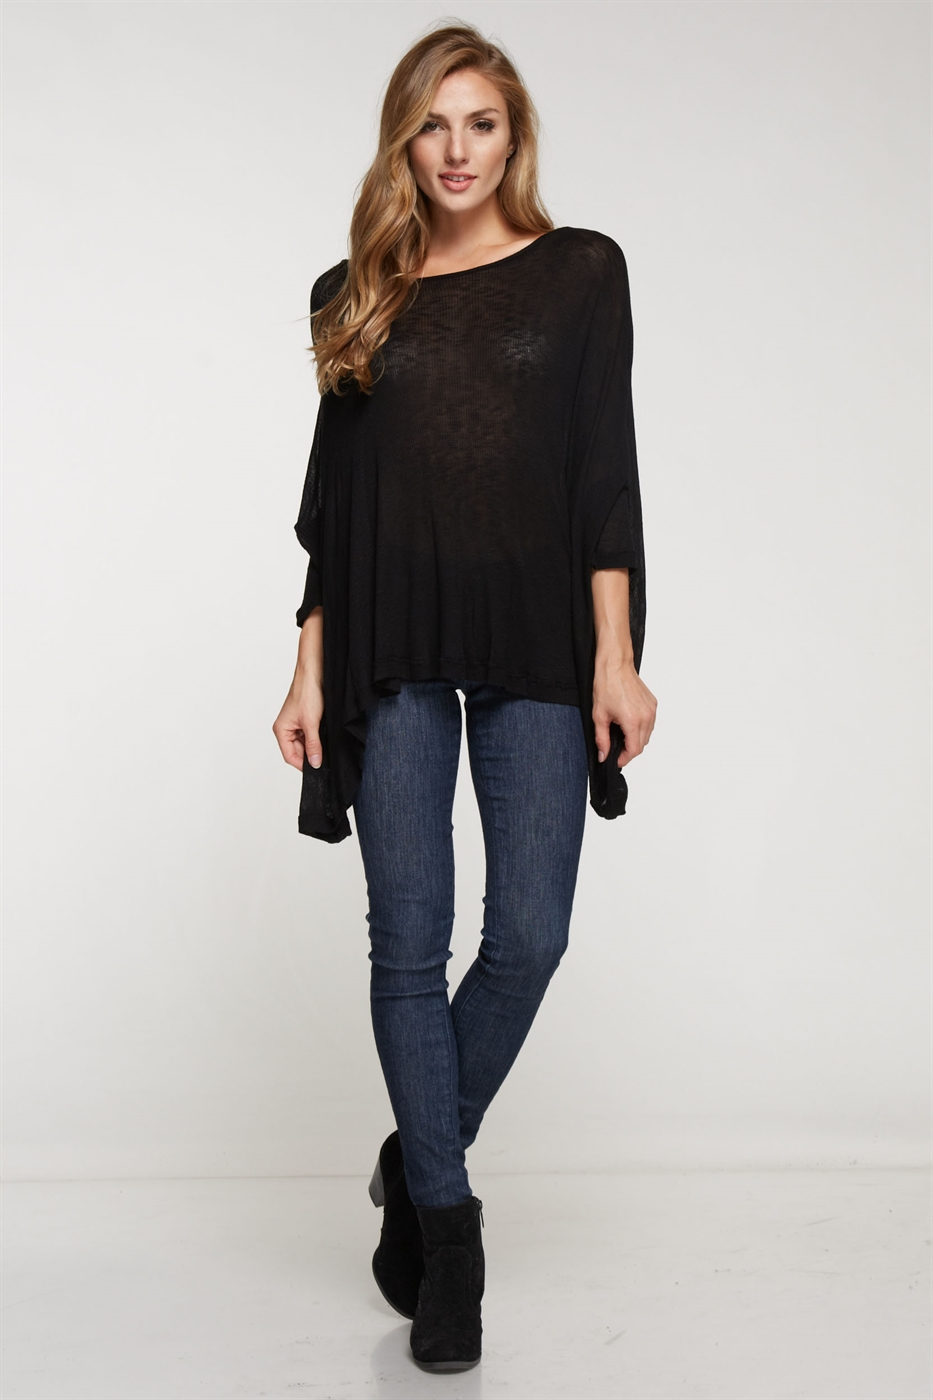 SLOUCHY RIBBED KNIT TOP - orangeshine.com